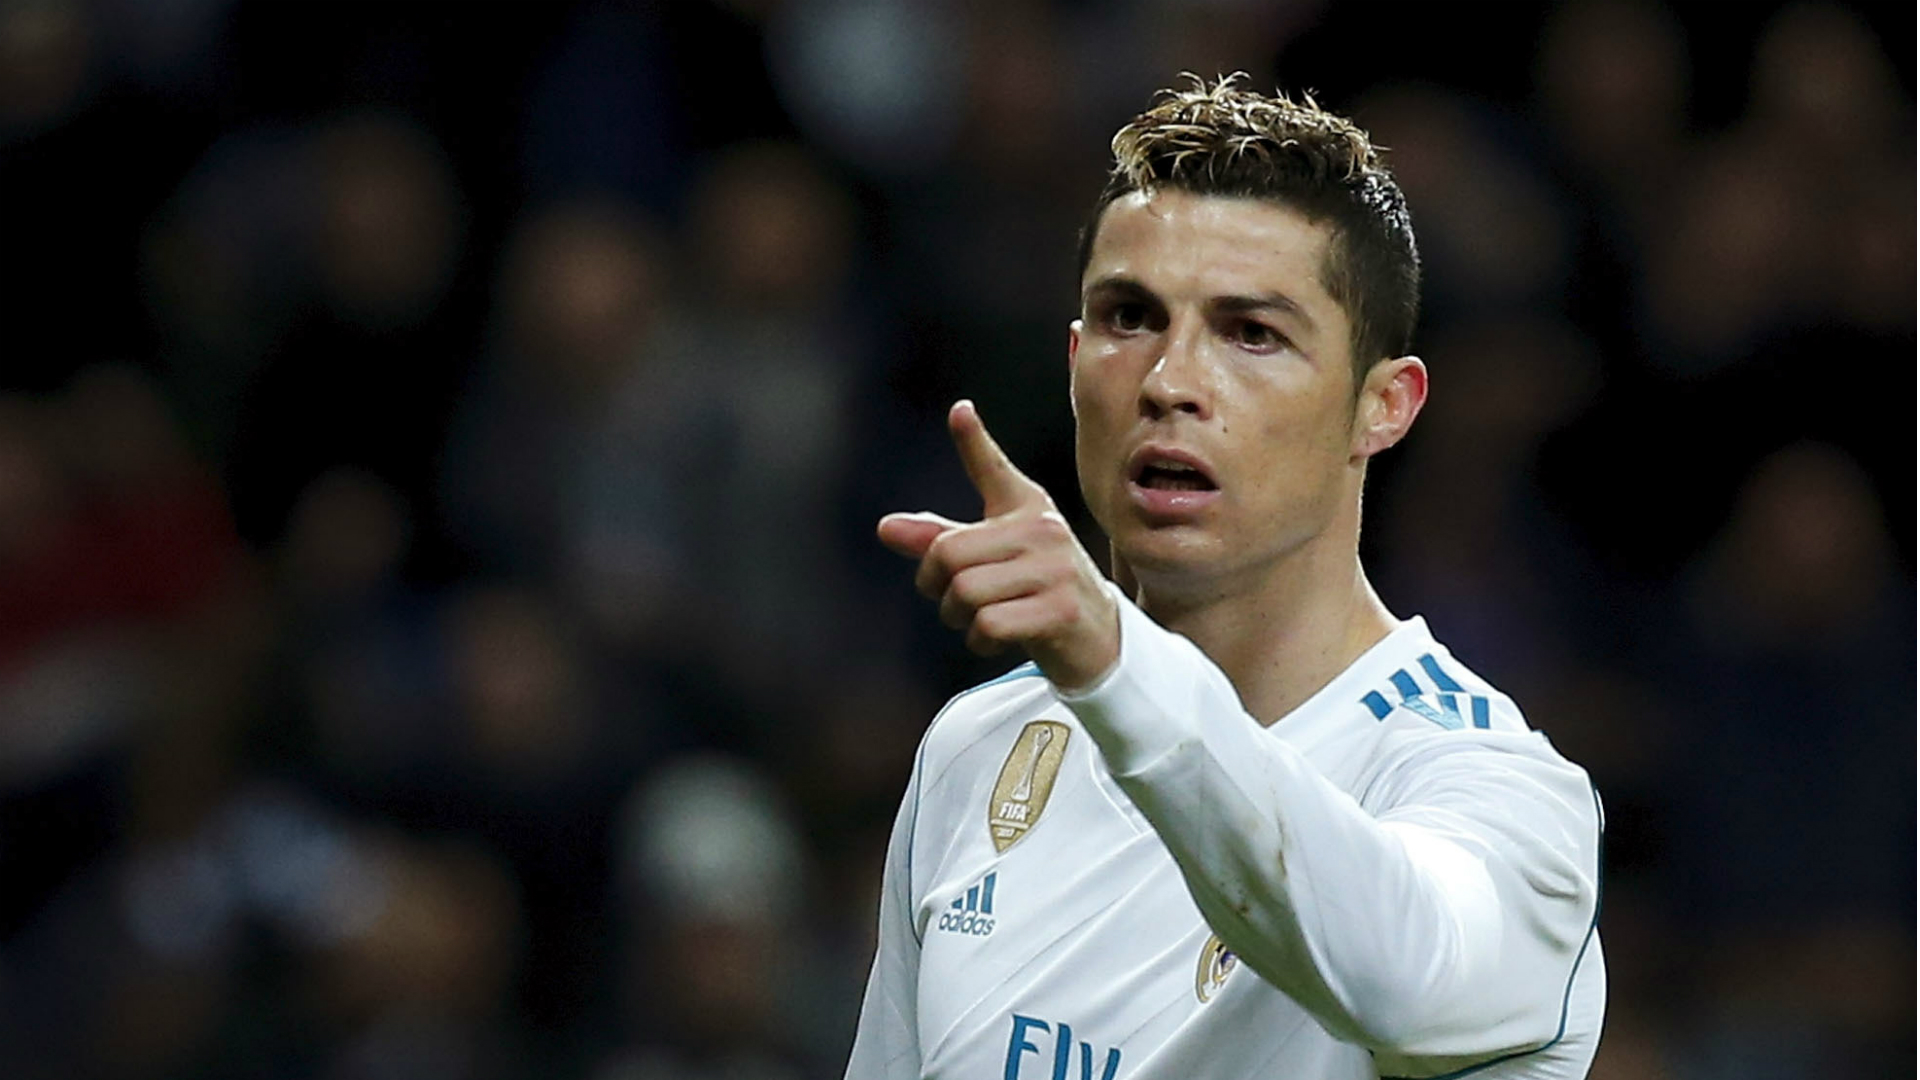 Ronaldo volleys penalty for Real's first in 3-1 win